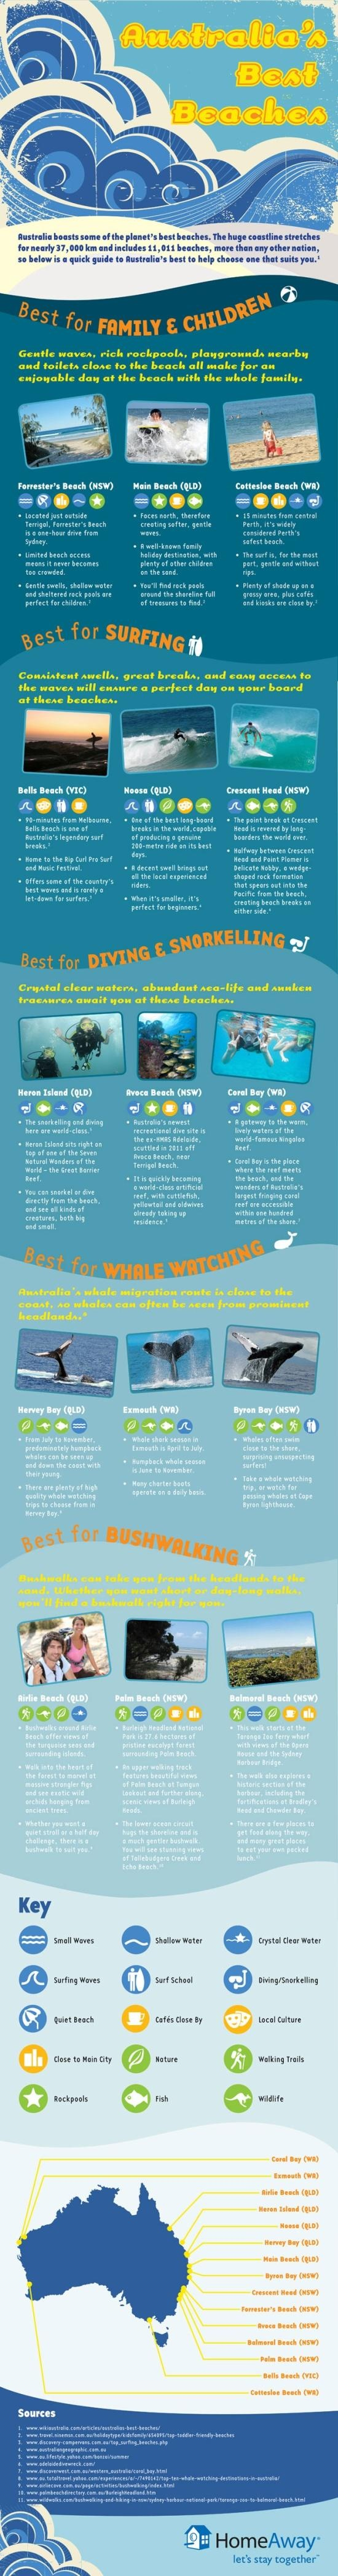 Australia's Best Beaches [Infographic] Best Surfing, Best Diving  Snorkeling, Best Whale Watching, Best Bushwalking  Best Beaches for Families and Kids